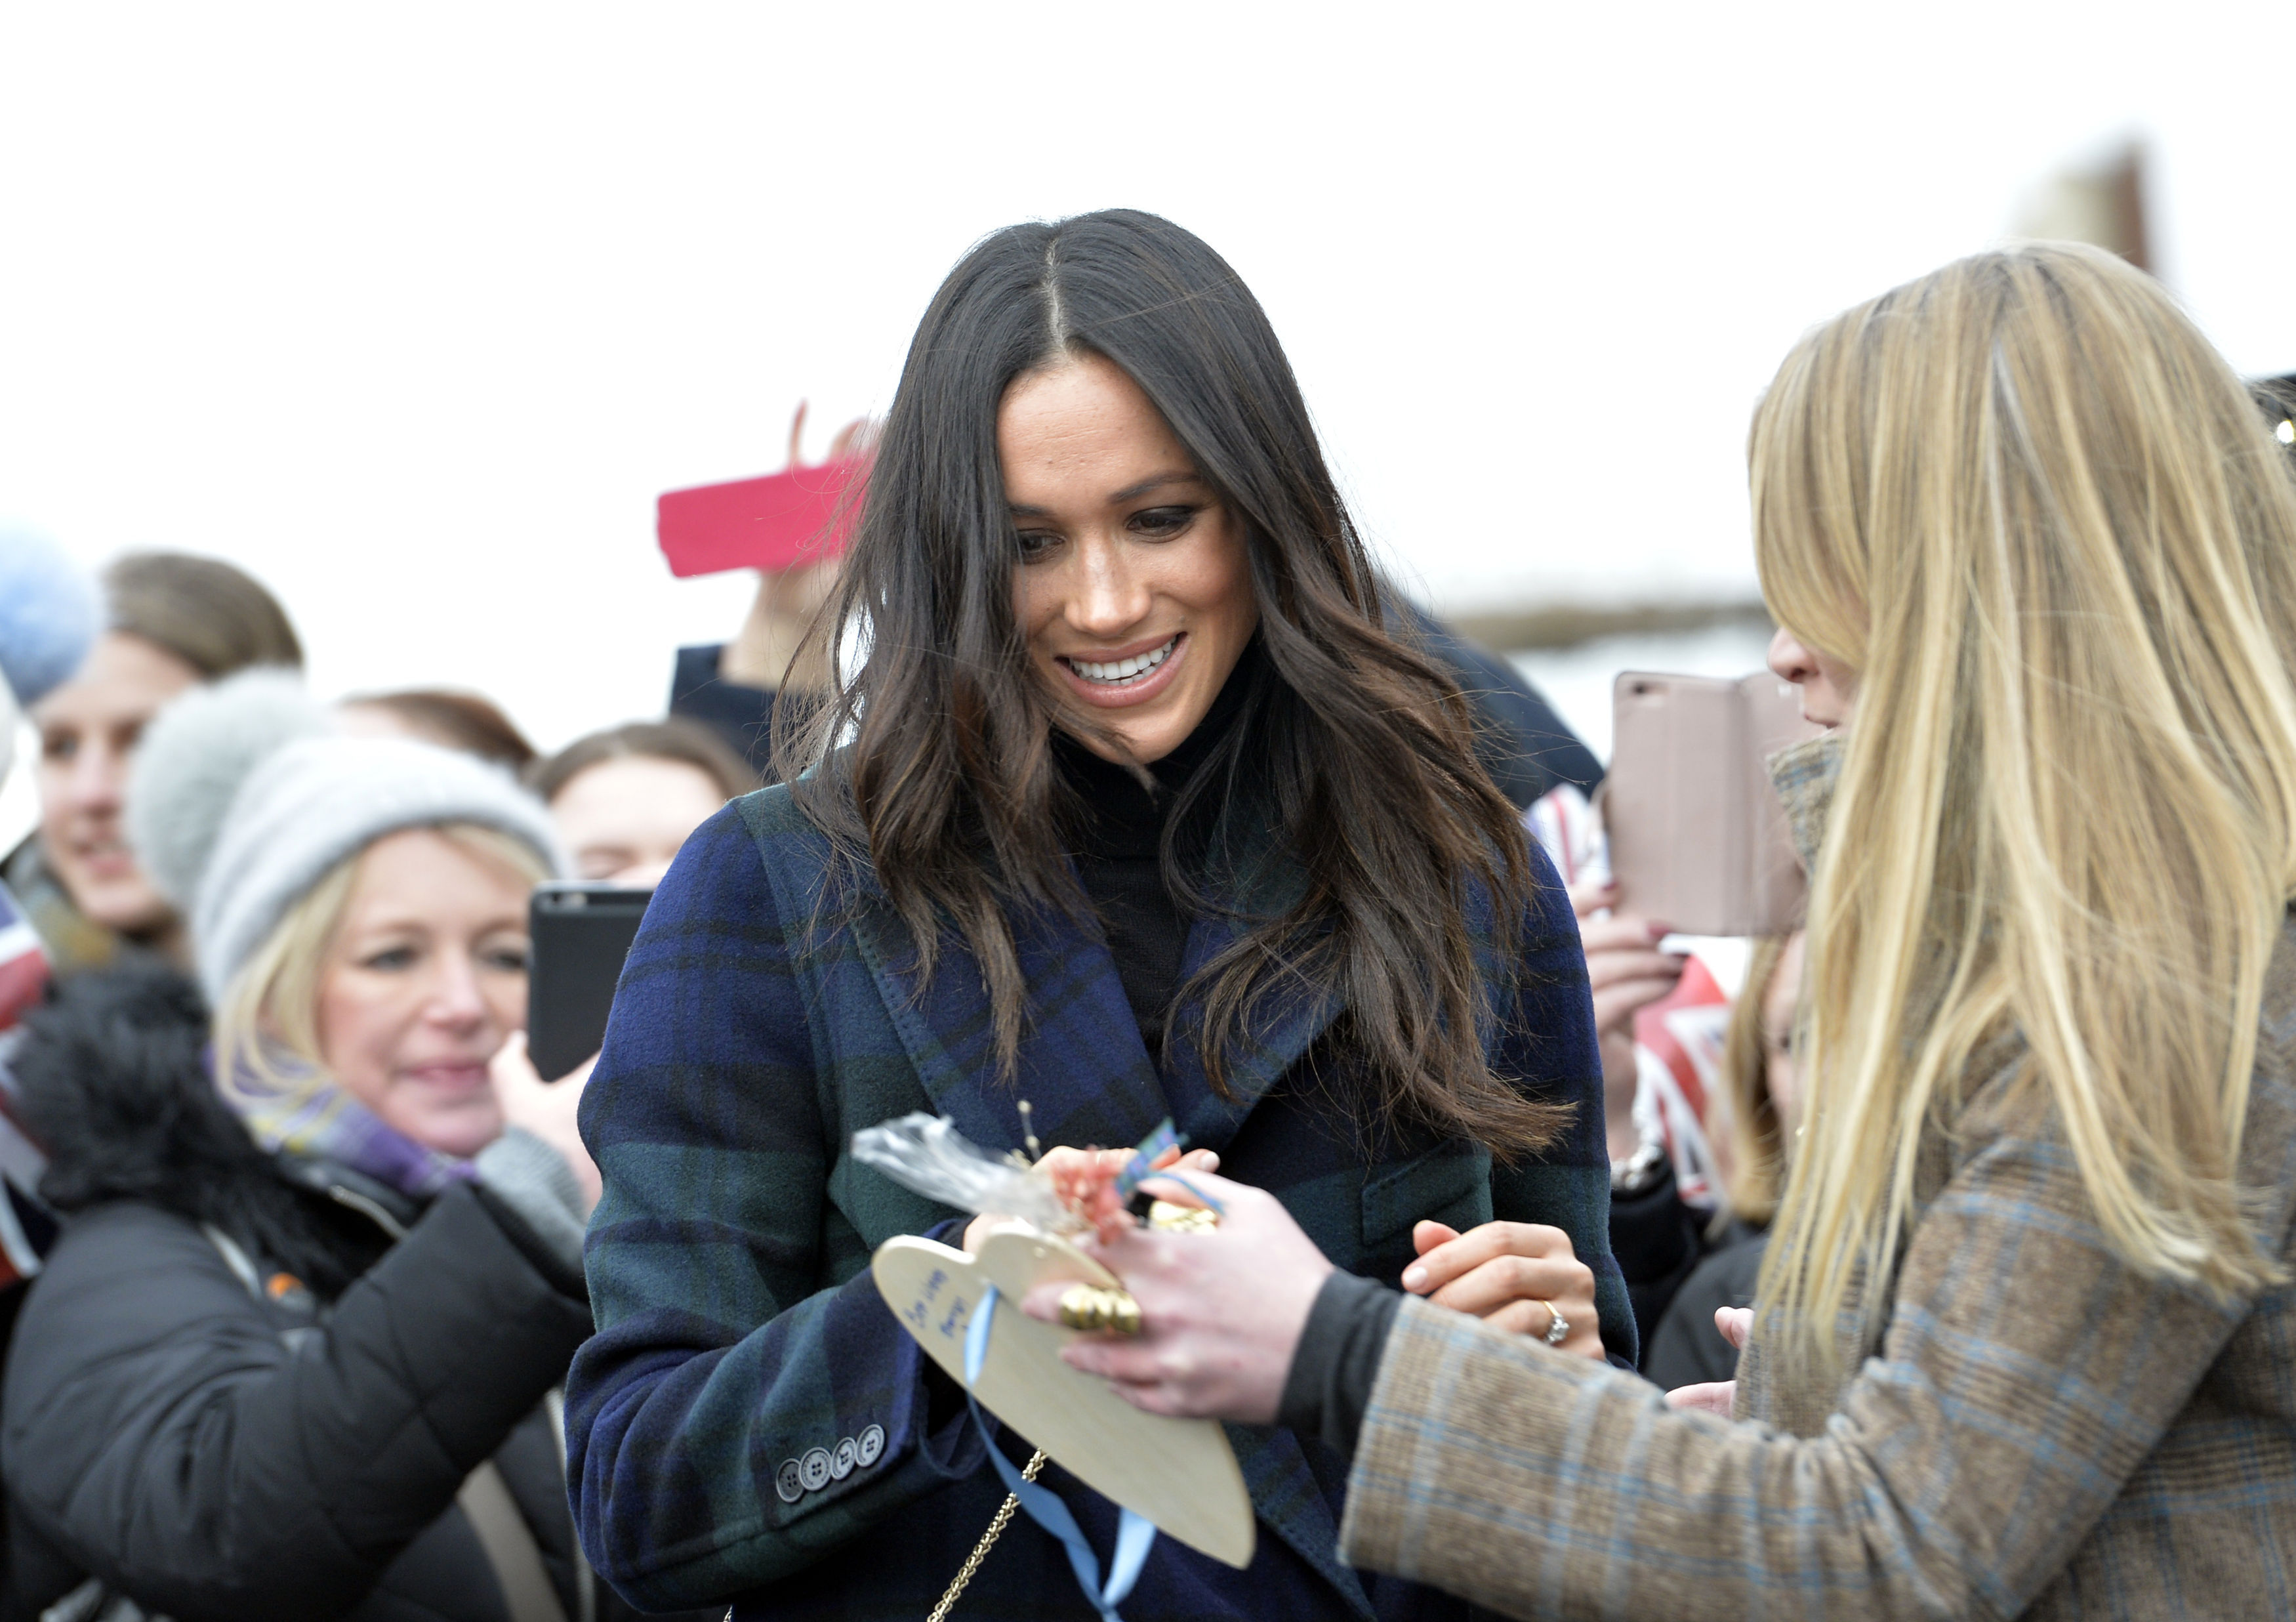 Onlookers presented gifts to Meghan Markle during her walkabout (John Linton/PA)